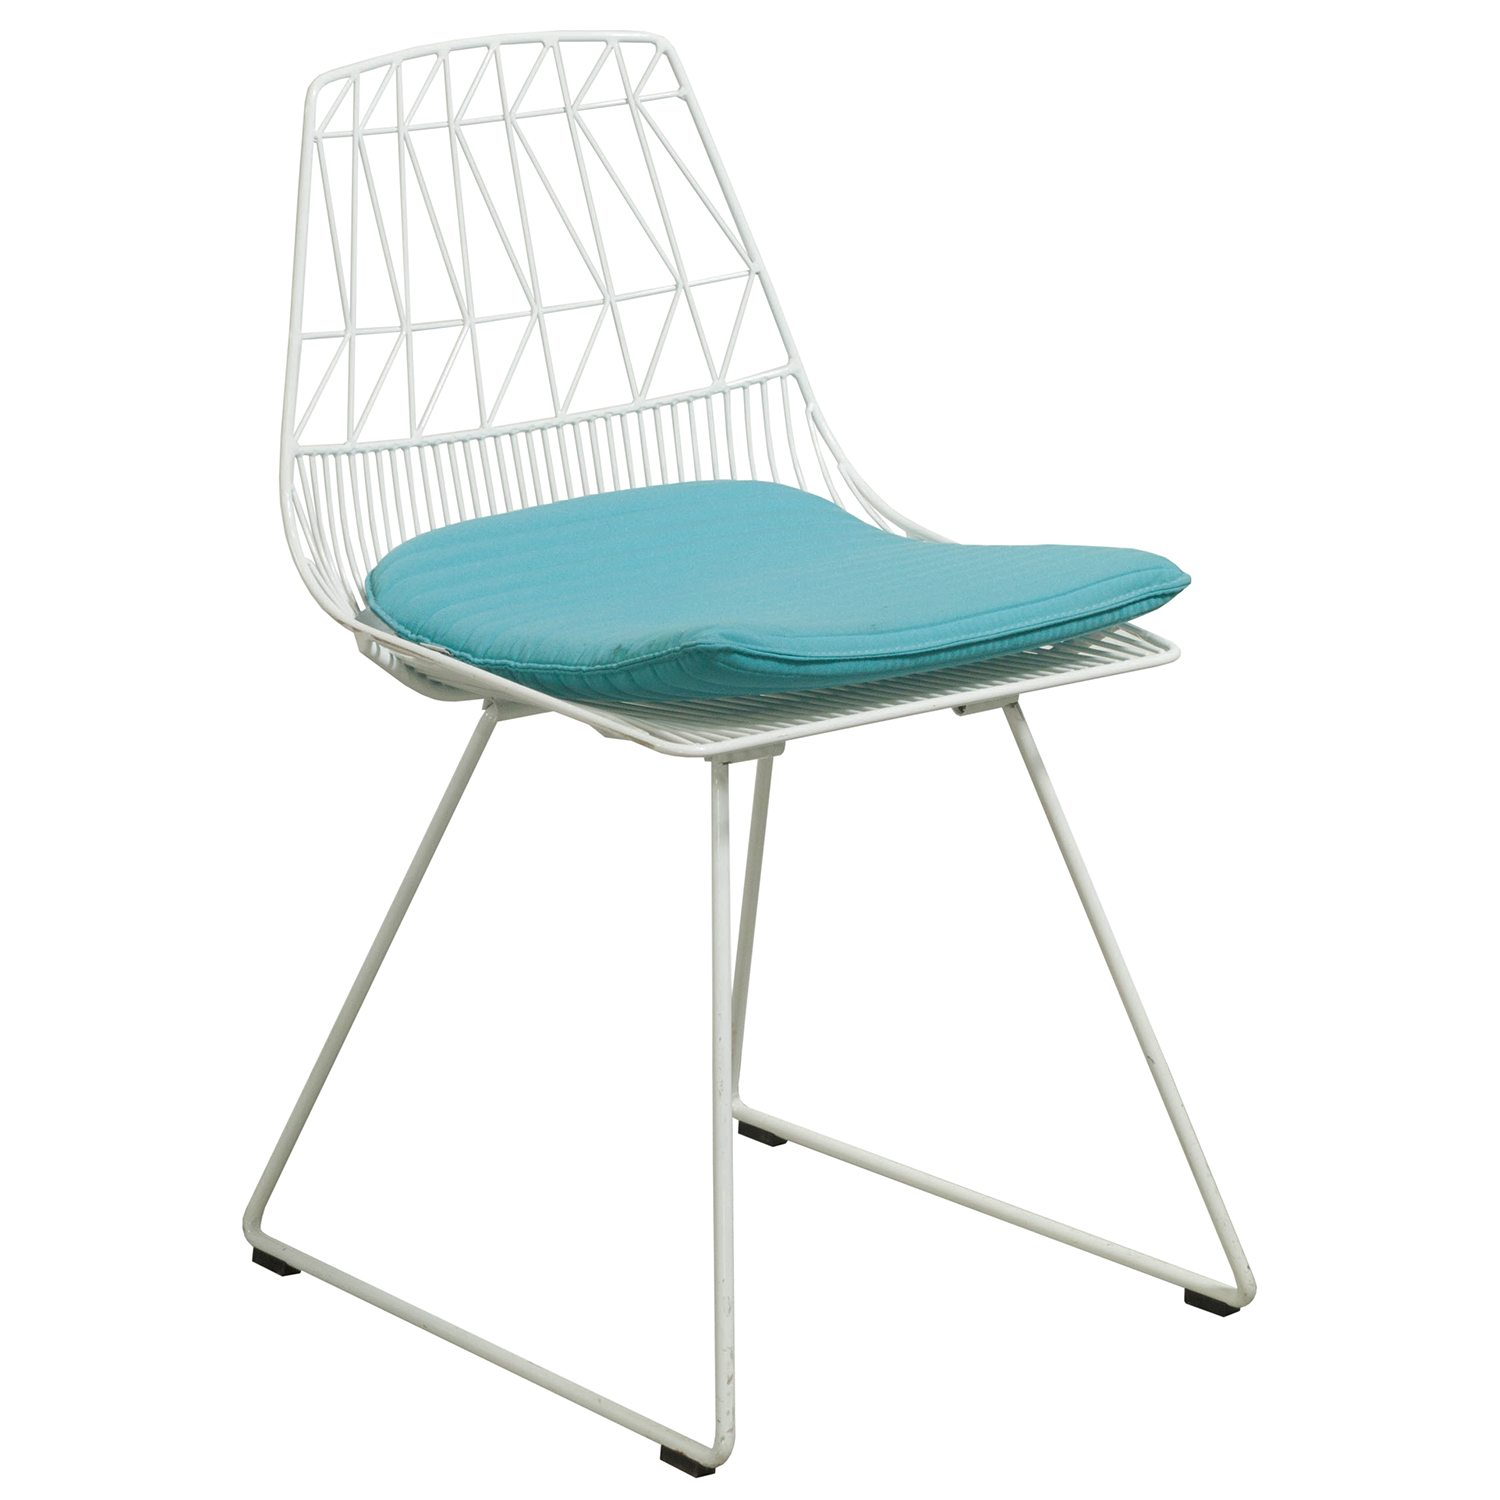 aqua desk chair canvas beach chairs bend lucy used side white and national